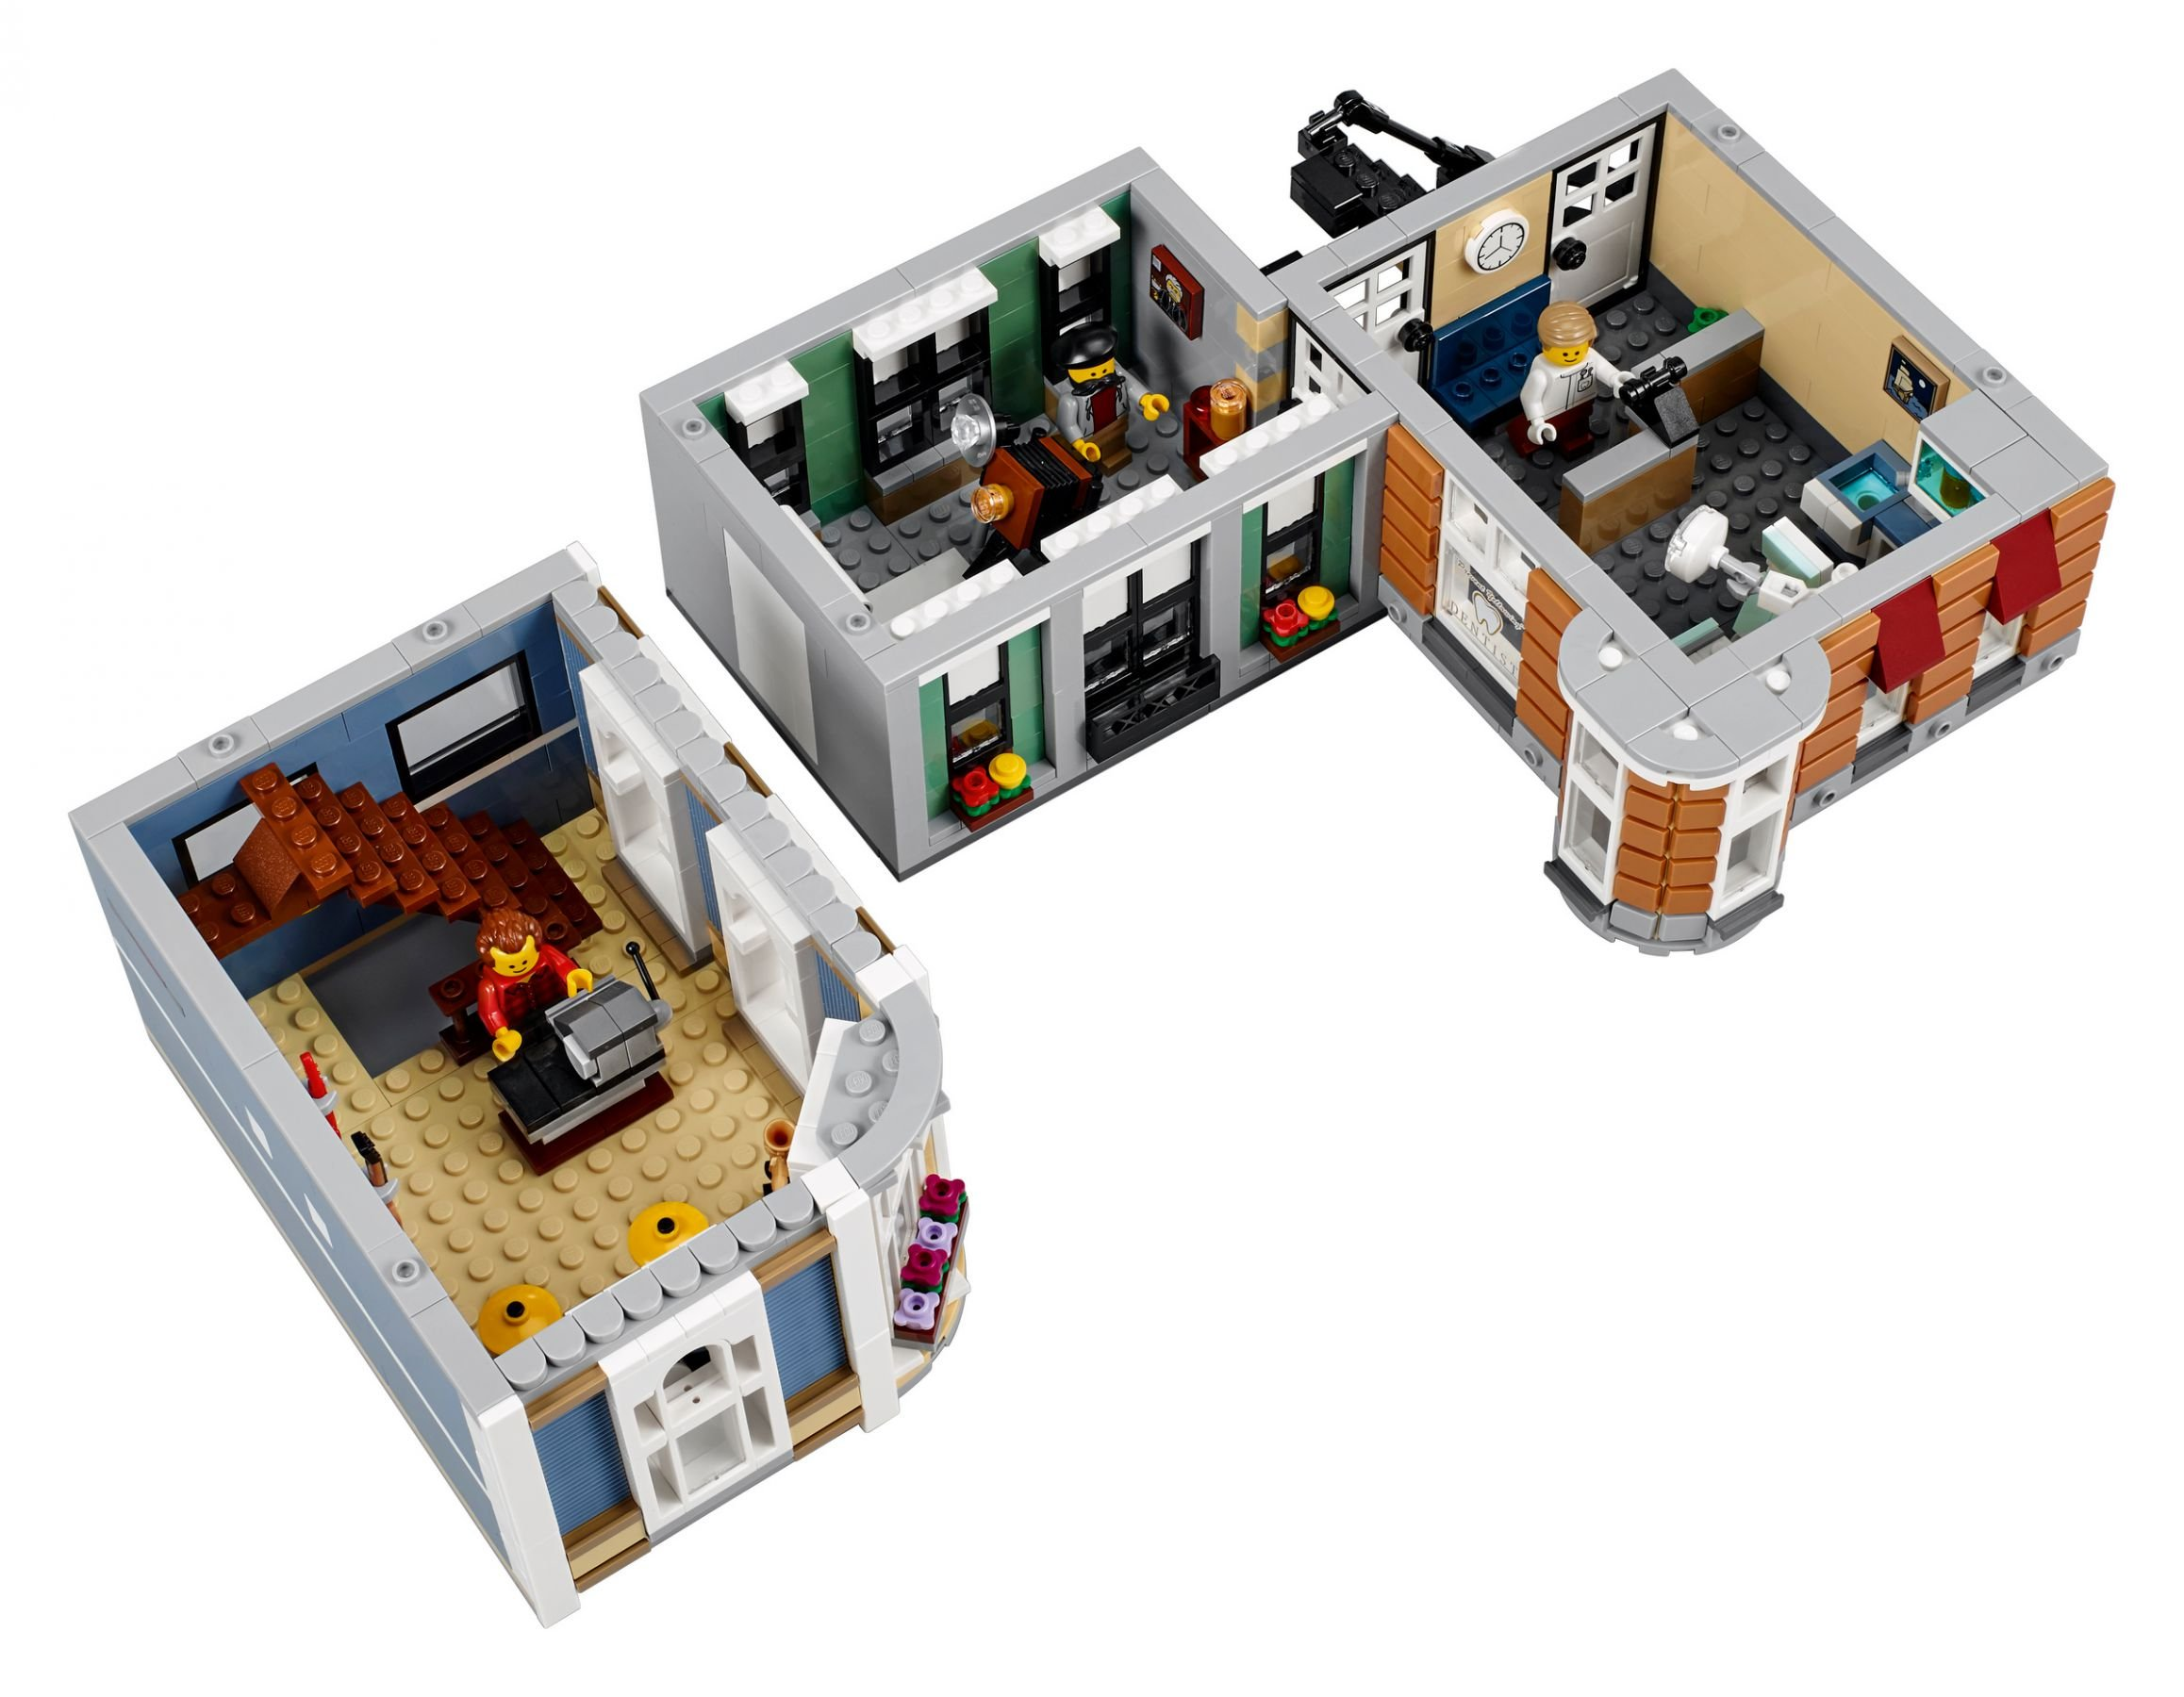 LEGO Advanced Models 10255 Assembly Square / Stadtleben LEGO_10255_alt6.jpg